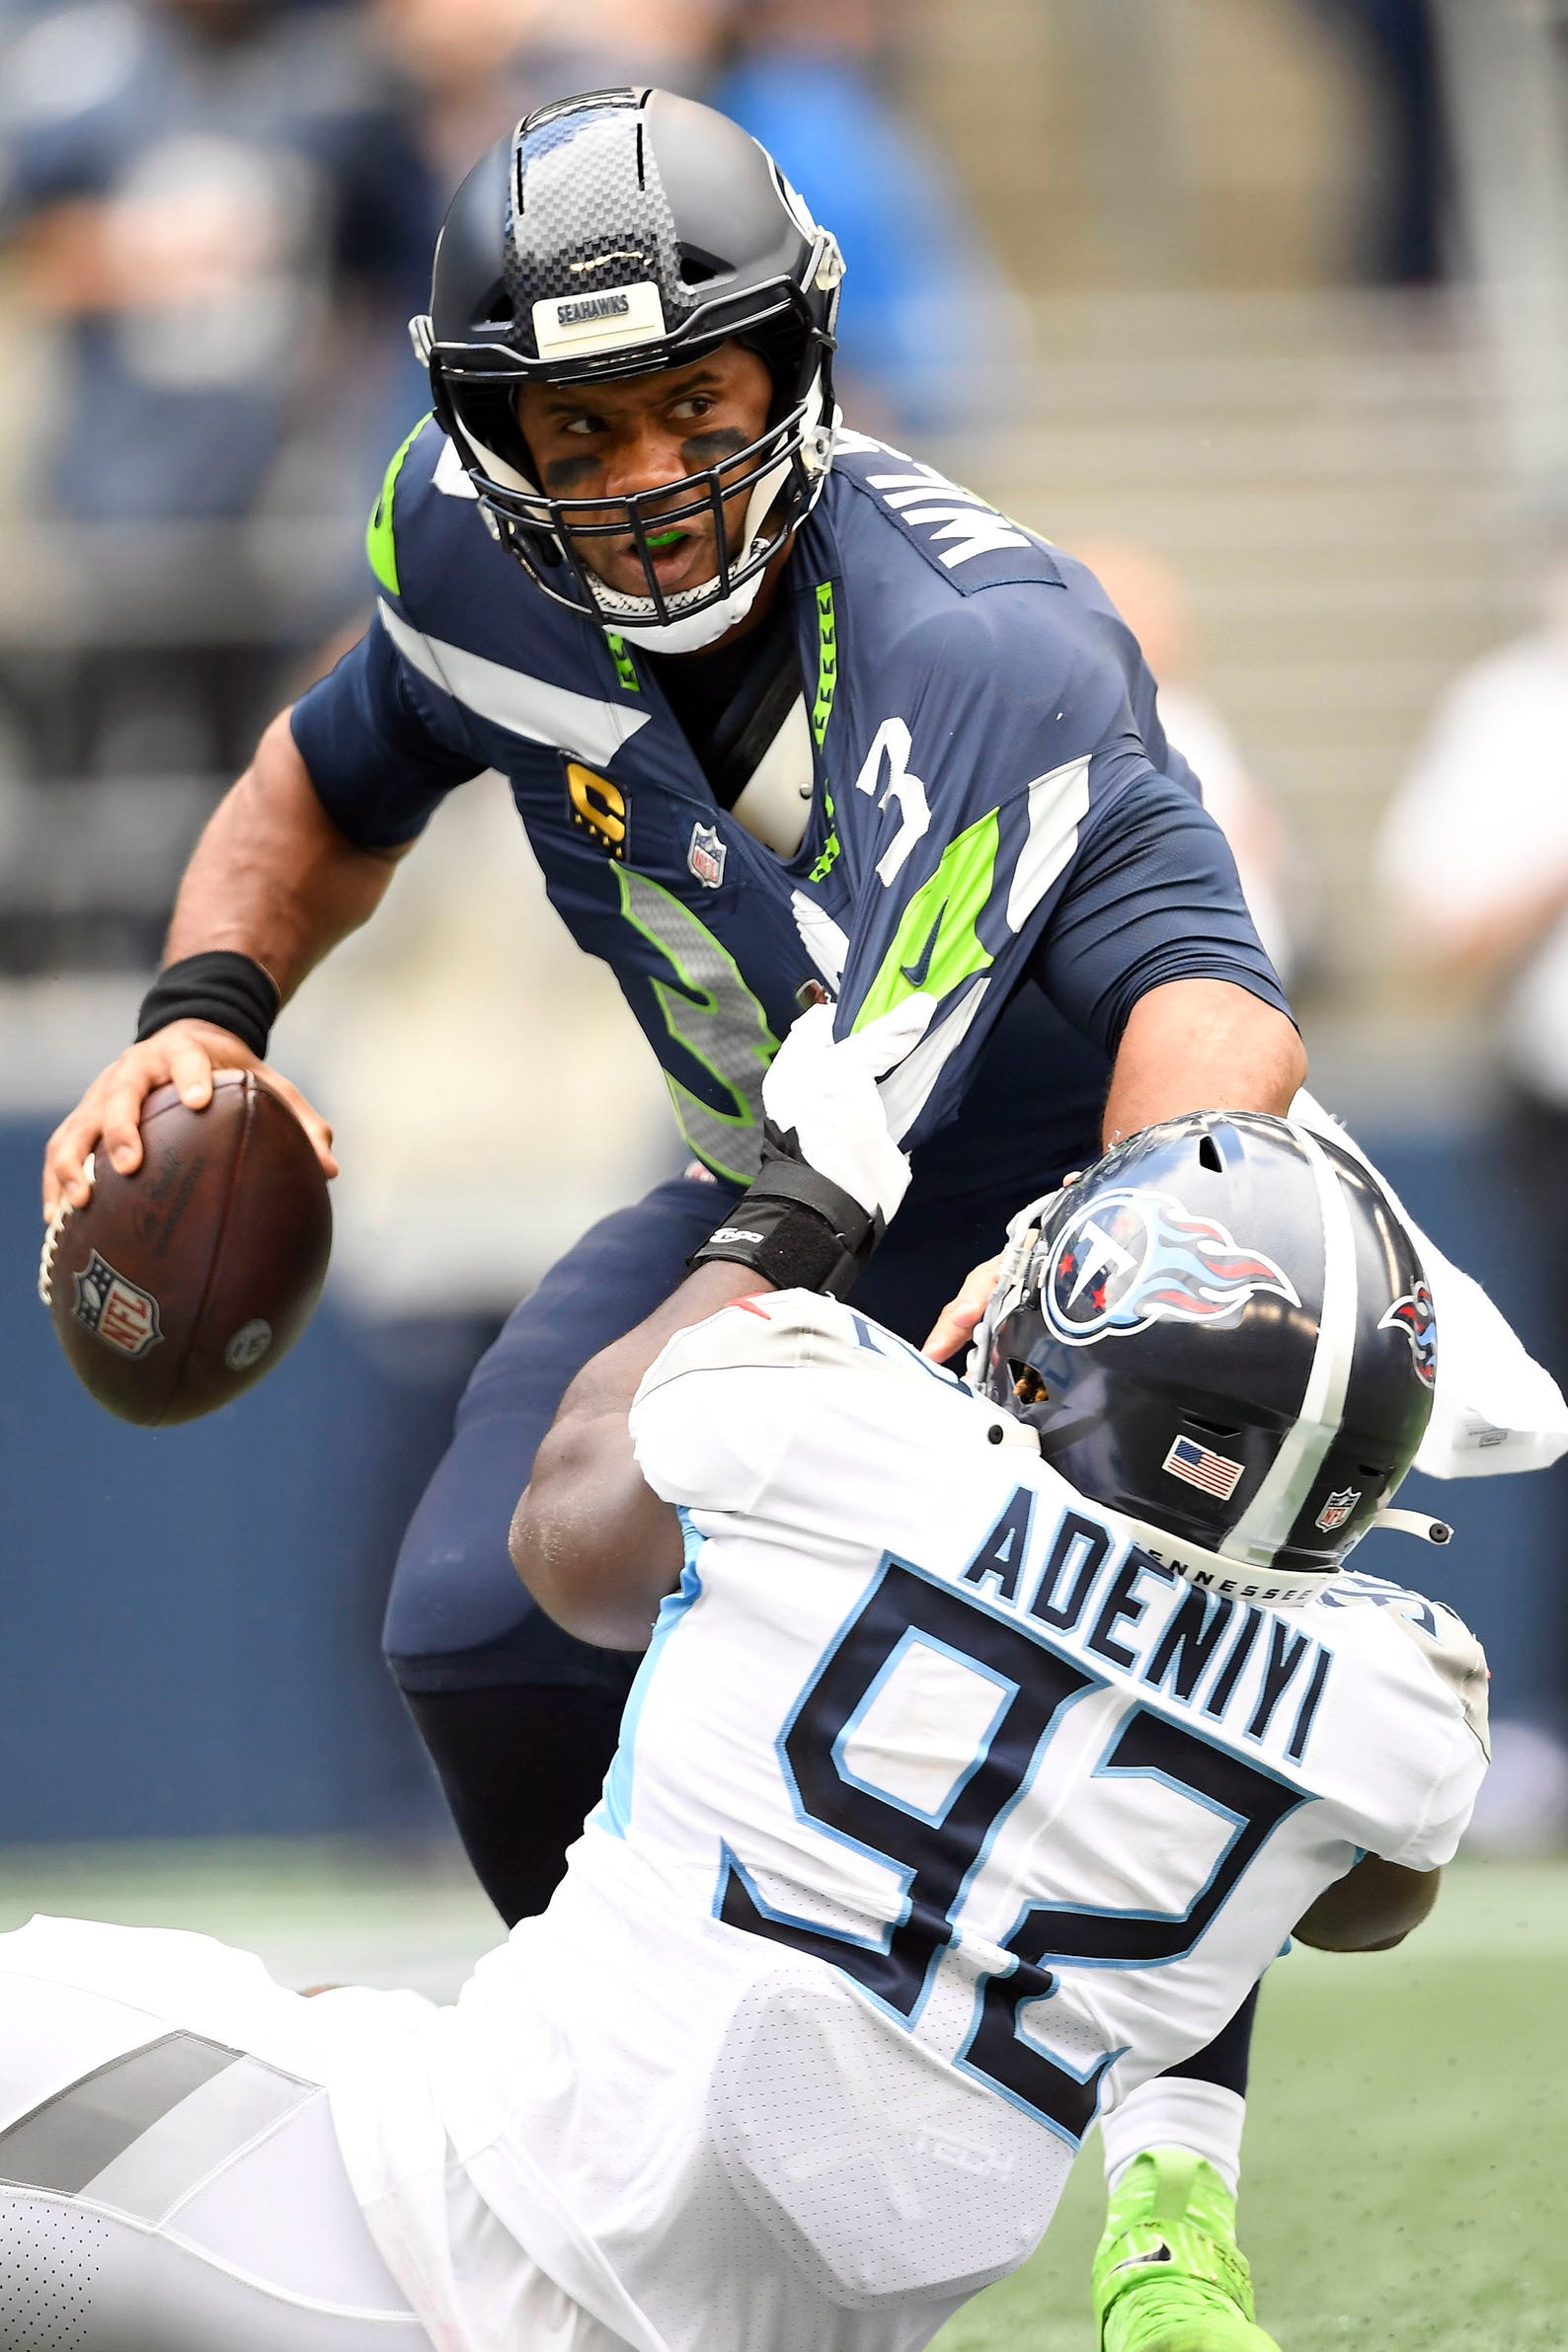 Tennessee Titans linebacker Ola Adeniyi (92) sacks Seattle Seahawks quarterback Russell Wilson (3) for a loss of yards in overtime at Lumen Field Sunday, Sept. 19, 2021 in Seattle, Wash.